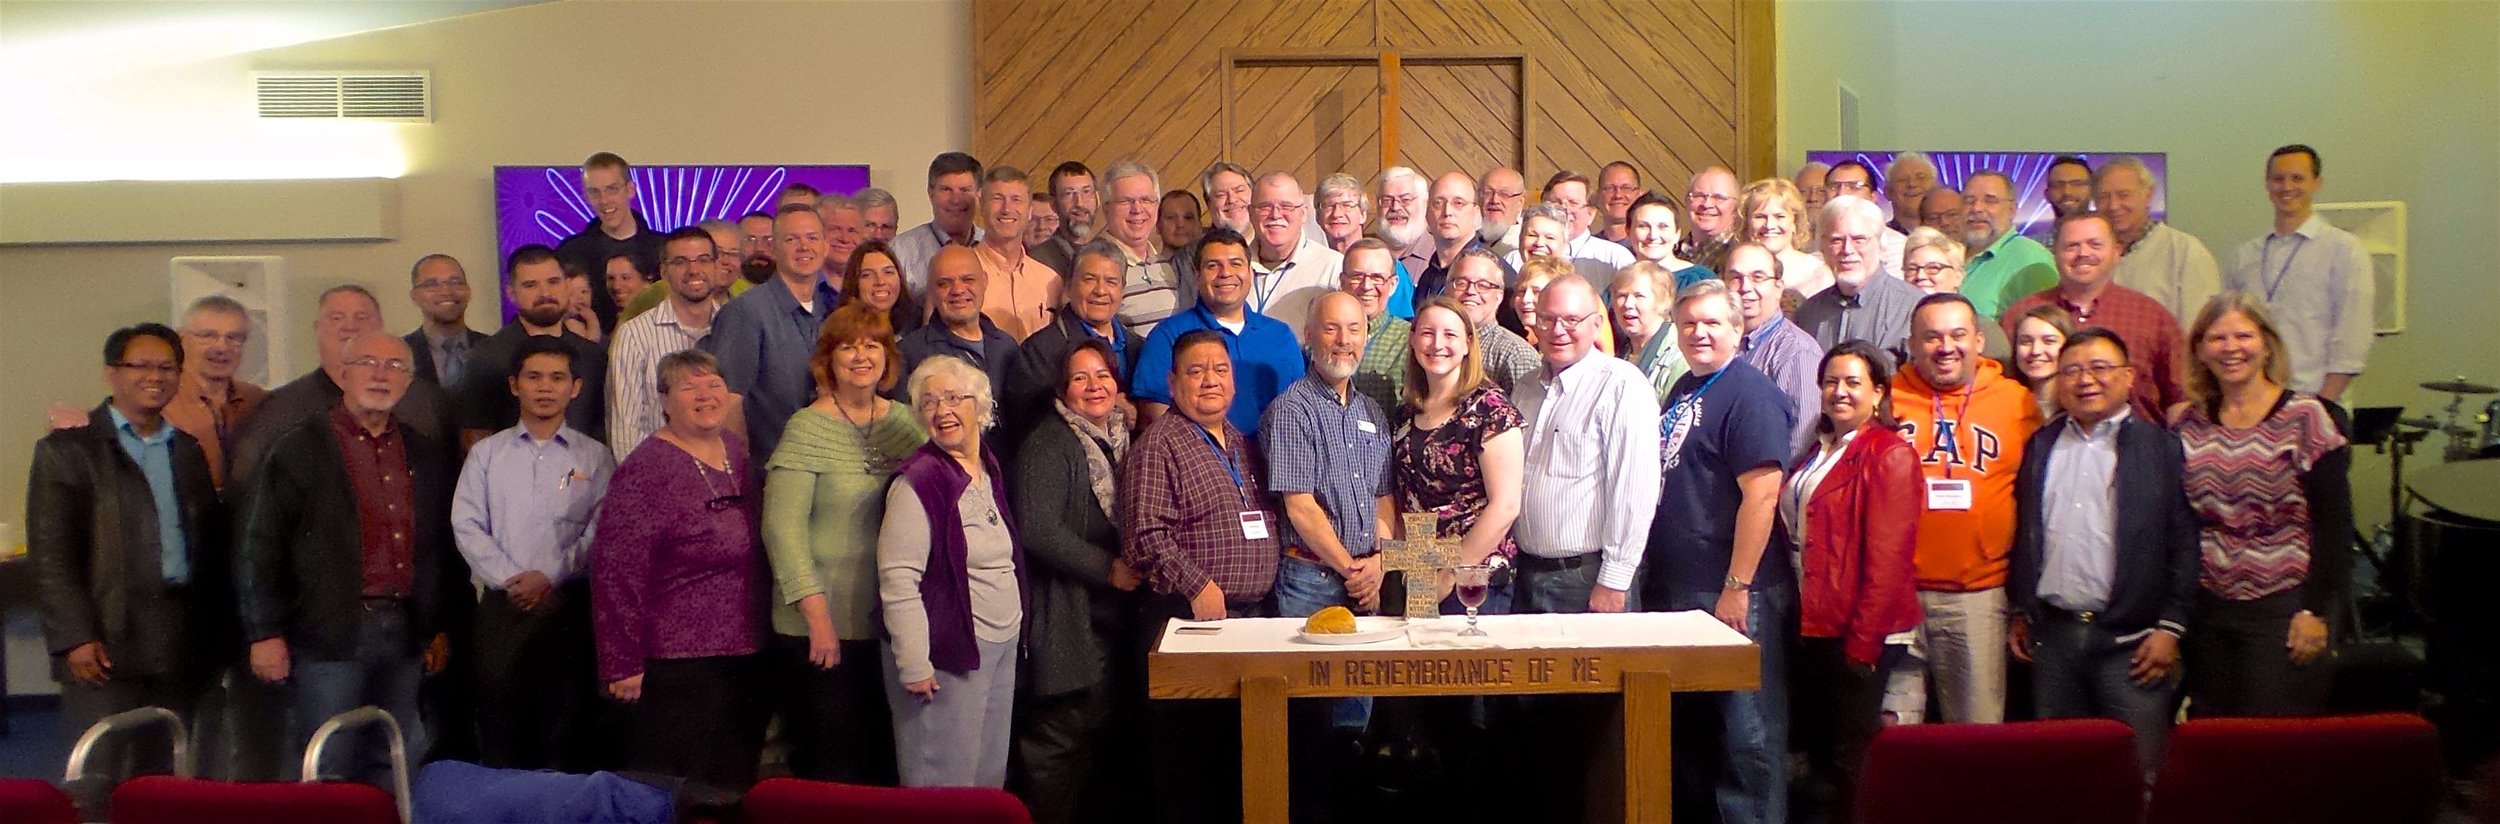 Folks from seven states came together for fellowship, worship and reflection on practical spirituality